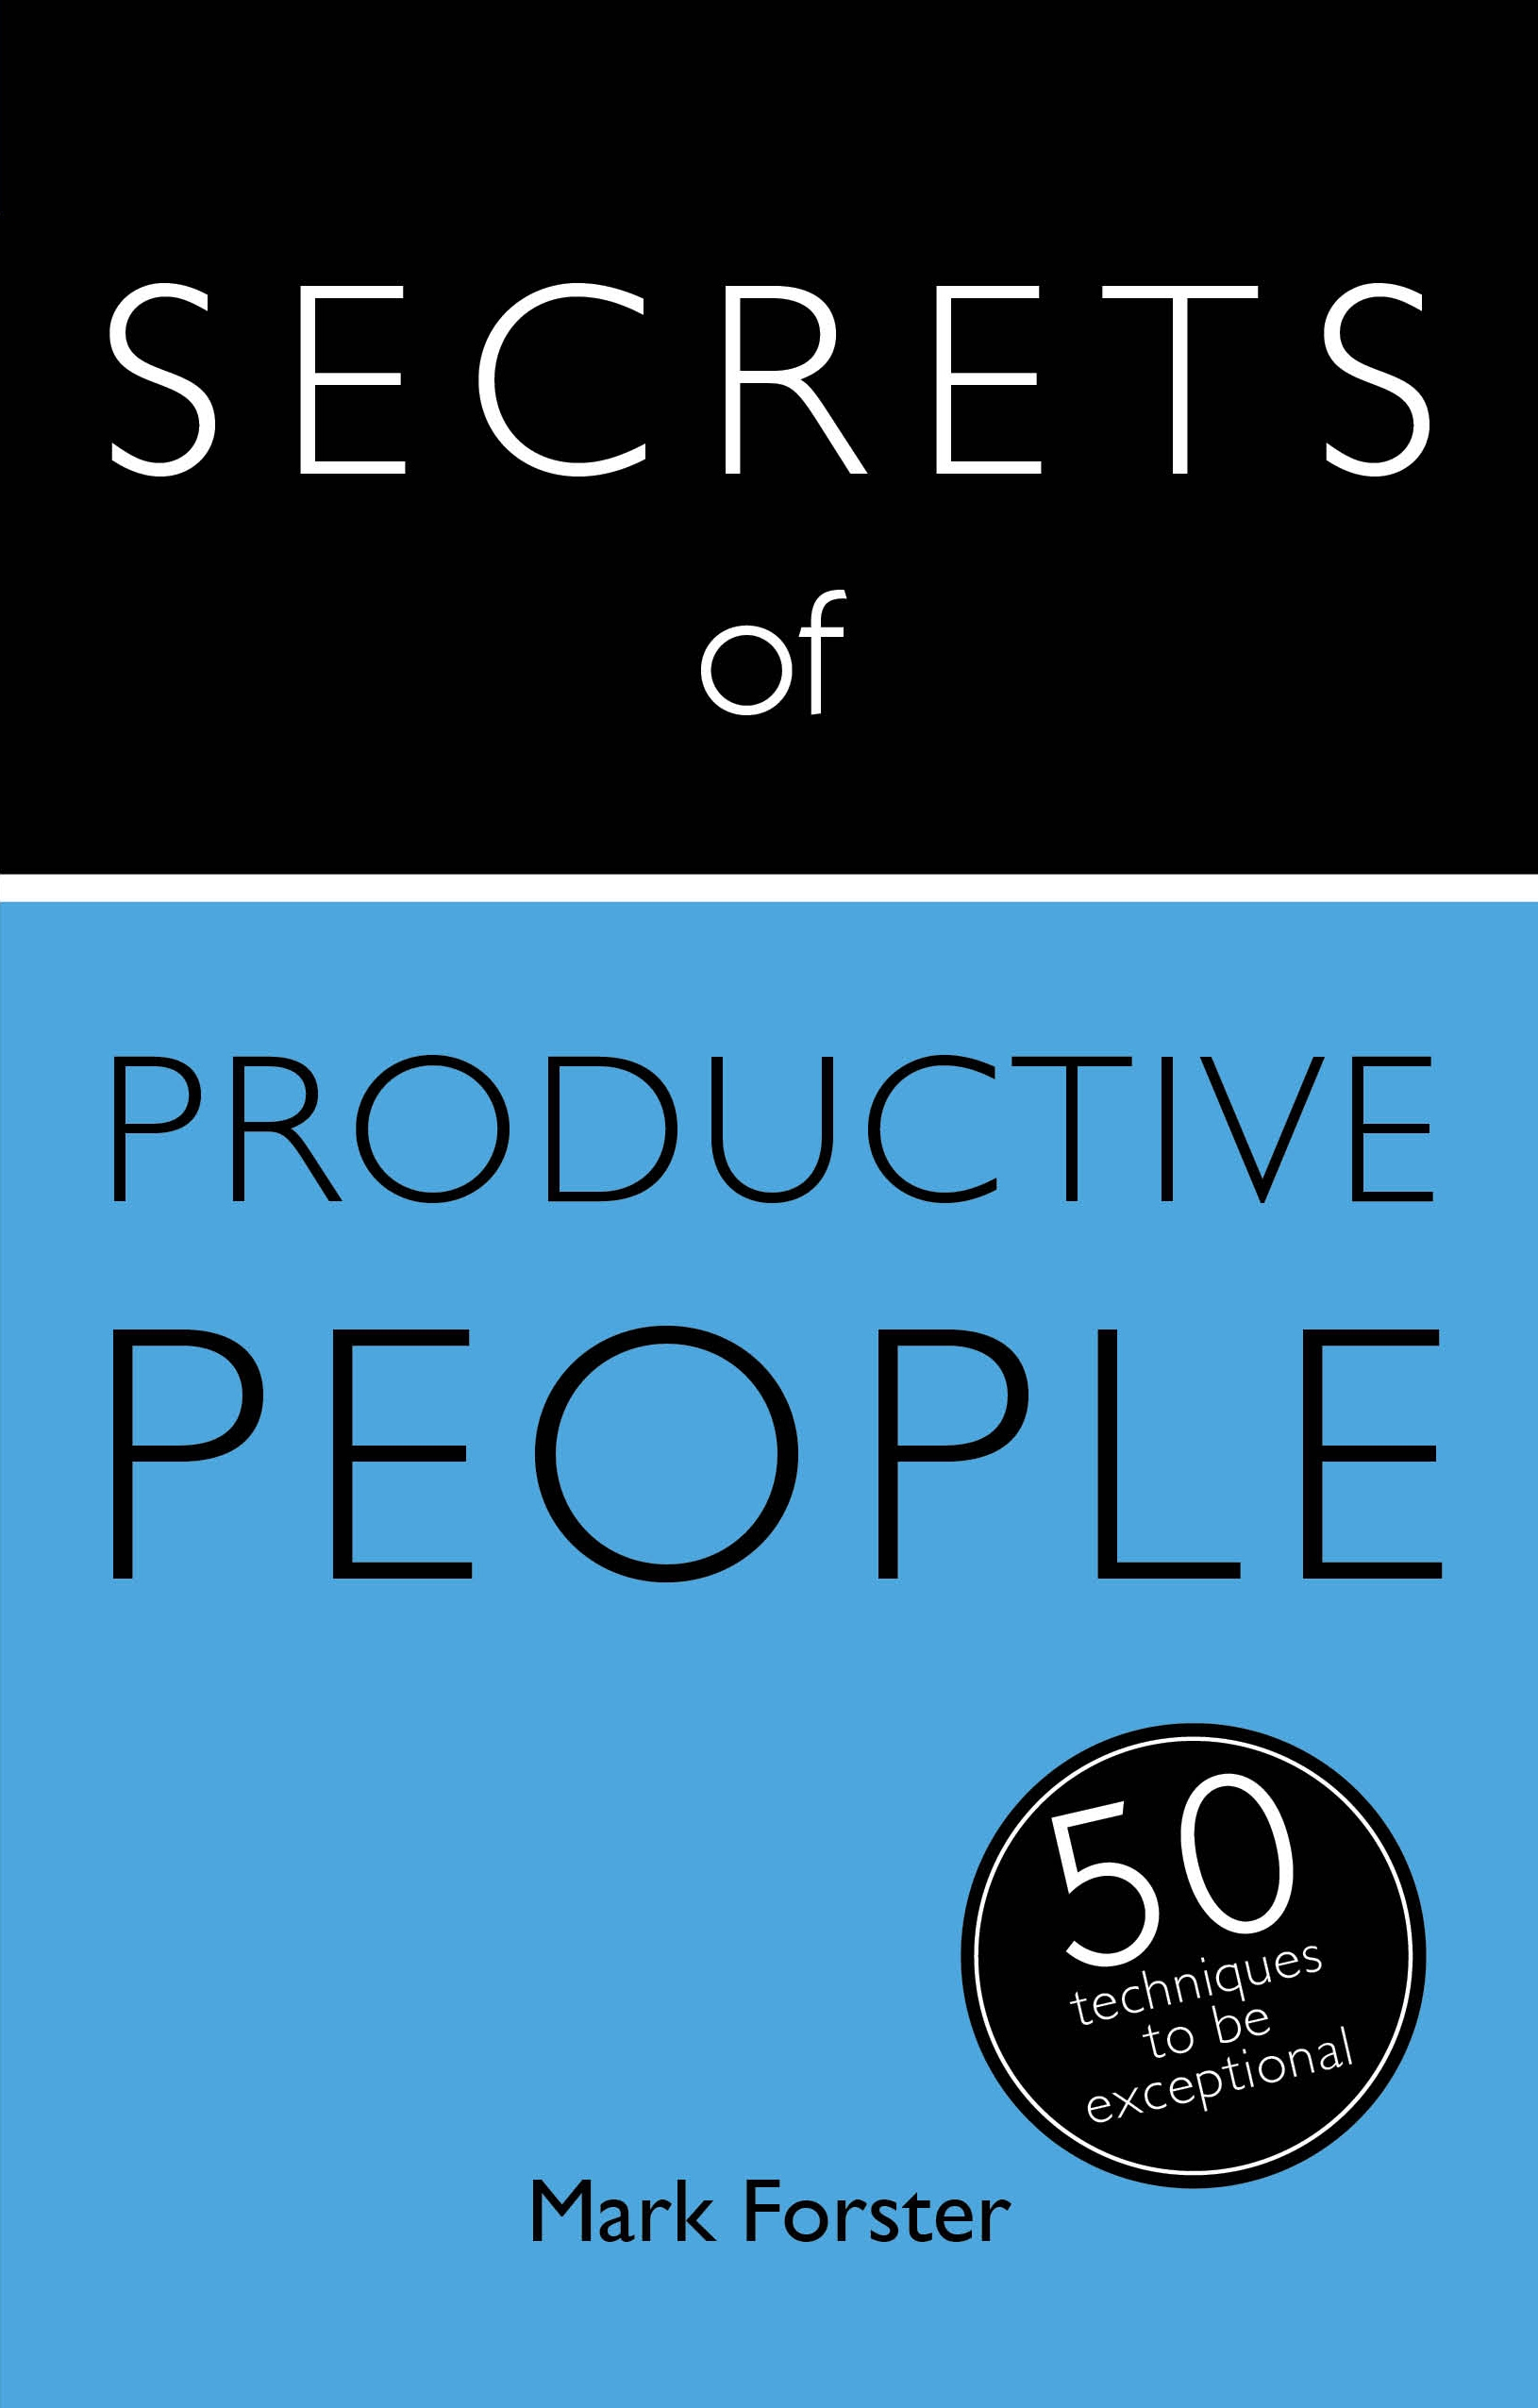 Secrets of Productive People: 50 Techniques To Get Things Done by Mark Forster, ISBN: 9781473608856